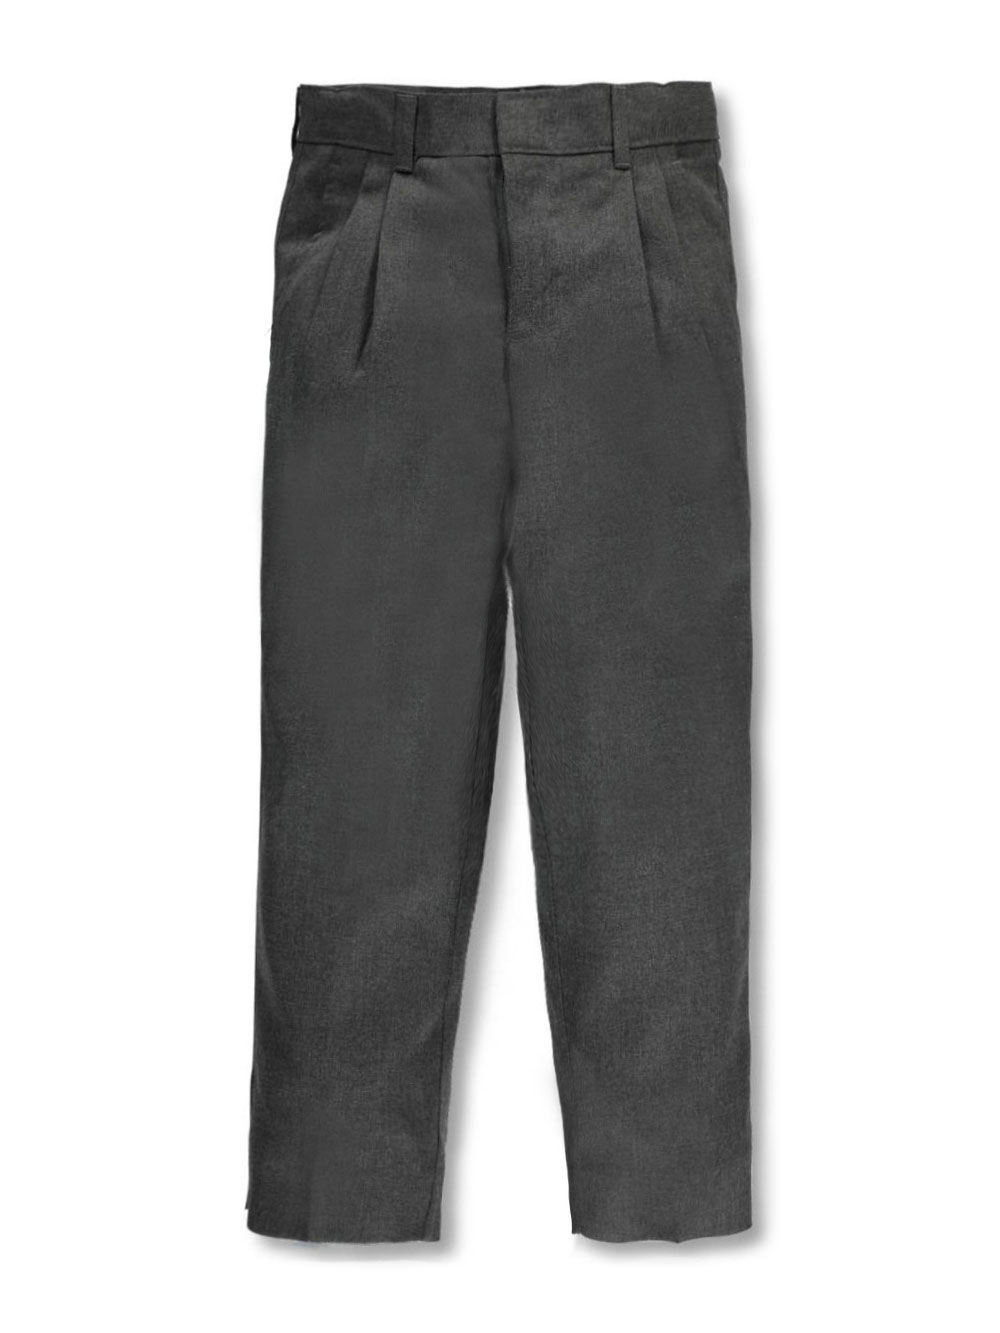 Big Boys' Twill Blend Pleated Pants